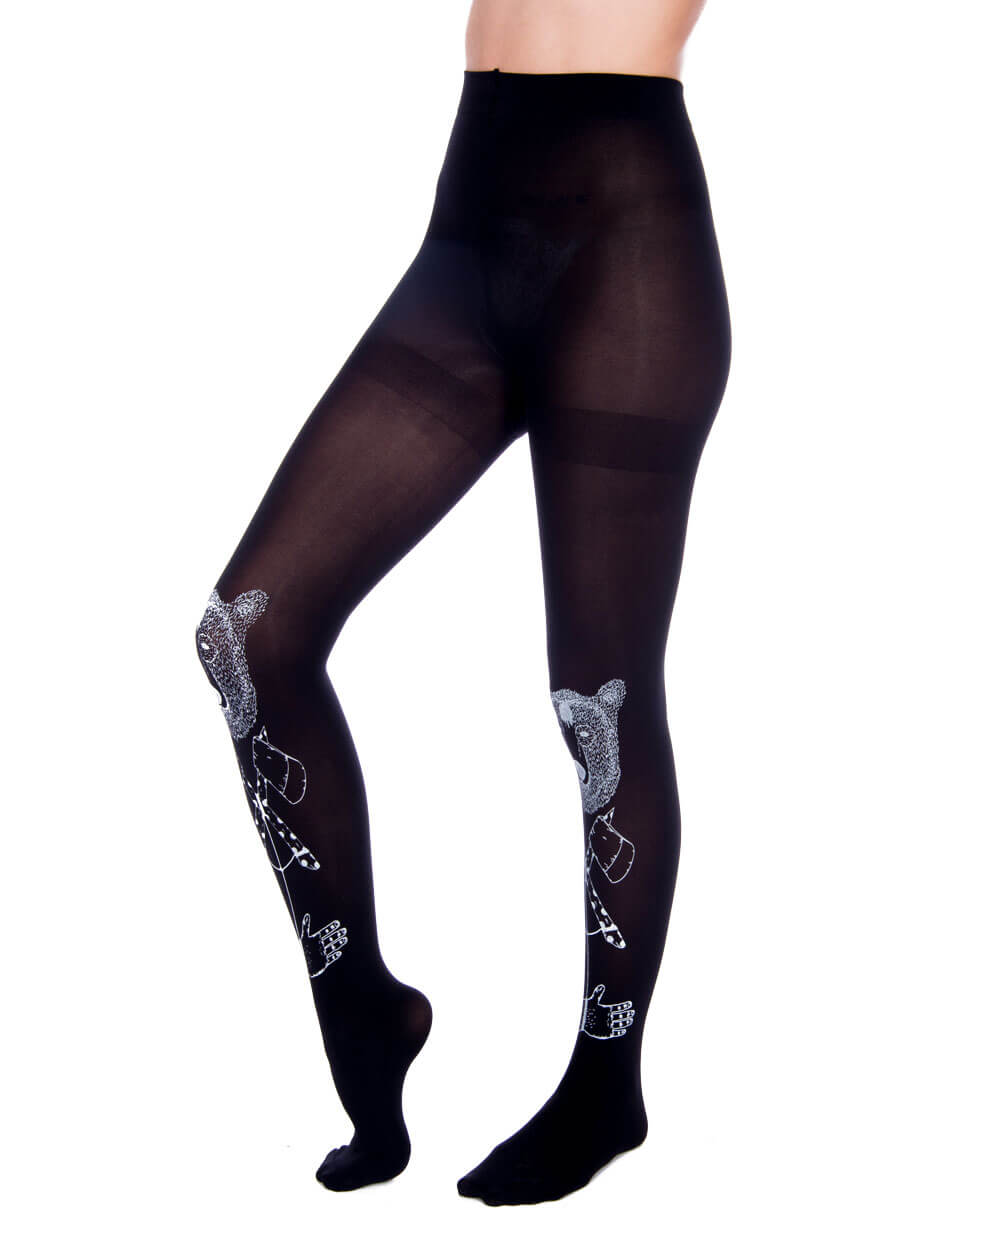 BEAR BLACK TIGHTS - Eros Mortis